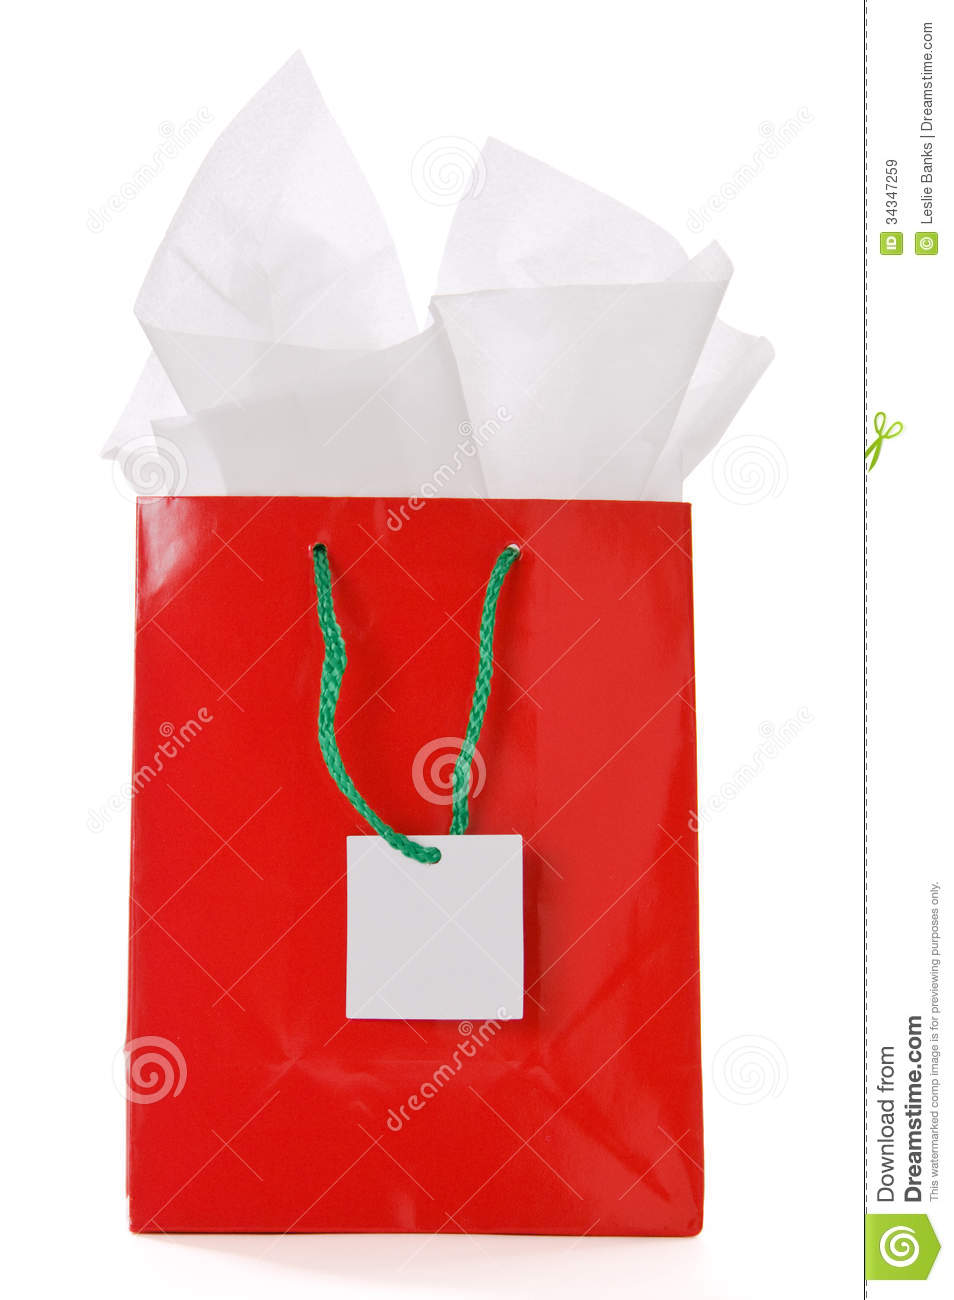 954x1300 Free Gift Bag Clipart